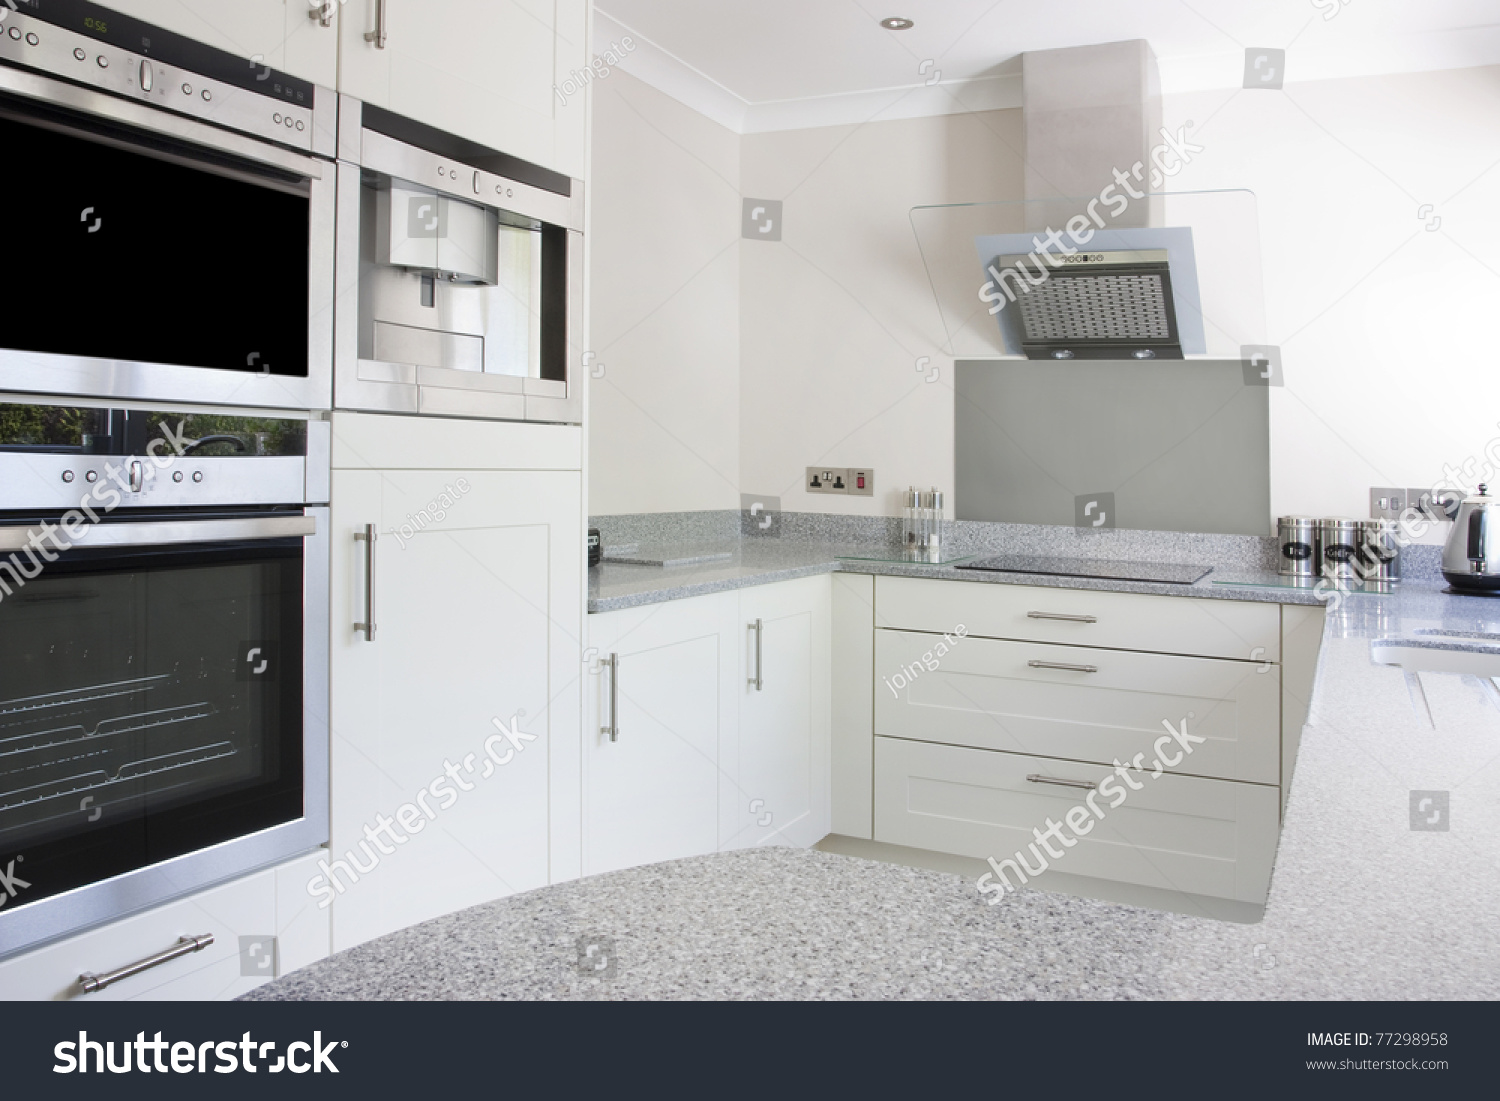 Extractor fan for kitchen - Modern Kitchen With Built In Ovens And Hob And Extractor Fan